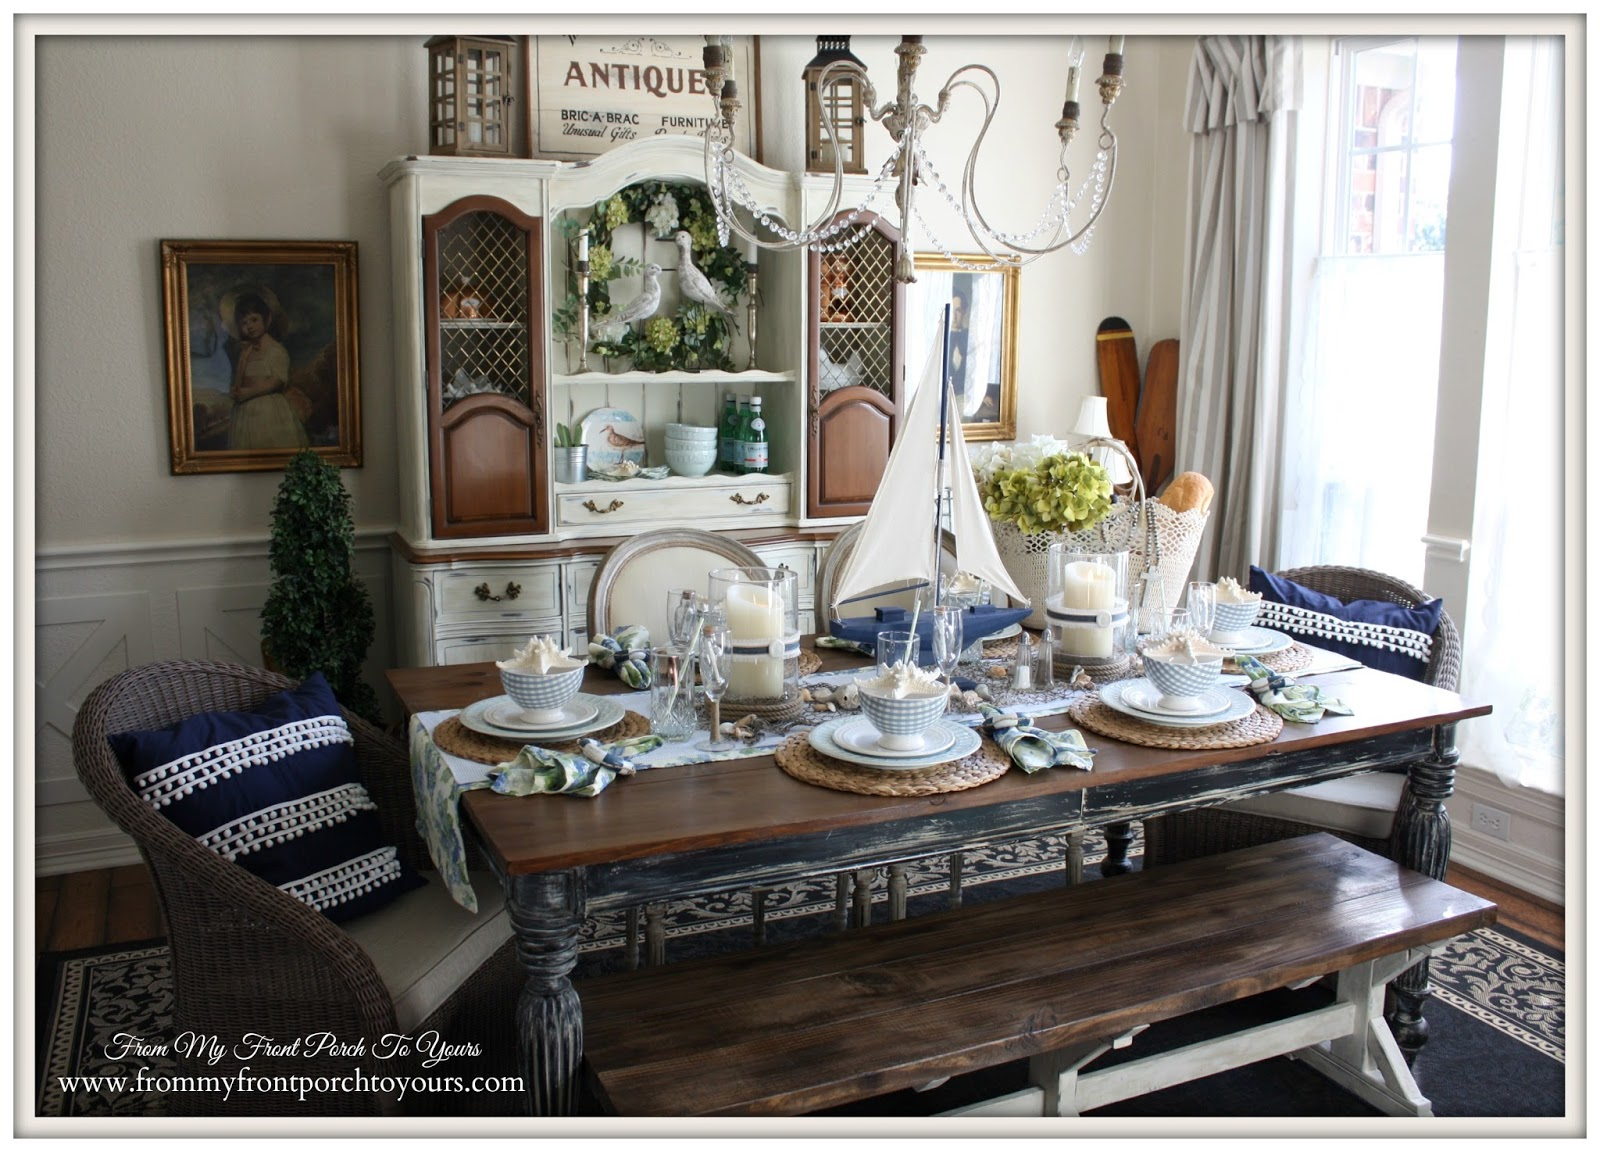 From My Front Porch To Yours French Farmhouse Nautical  : nauticaldiningroomfulltableIMG3739 from www.frommyfrontporchtoyours.com size 1600 x 1152 jpeg 372kB